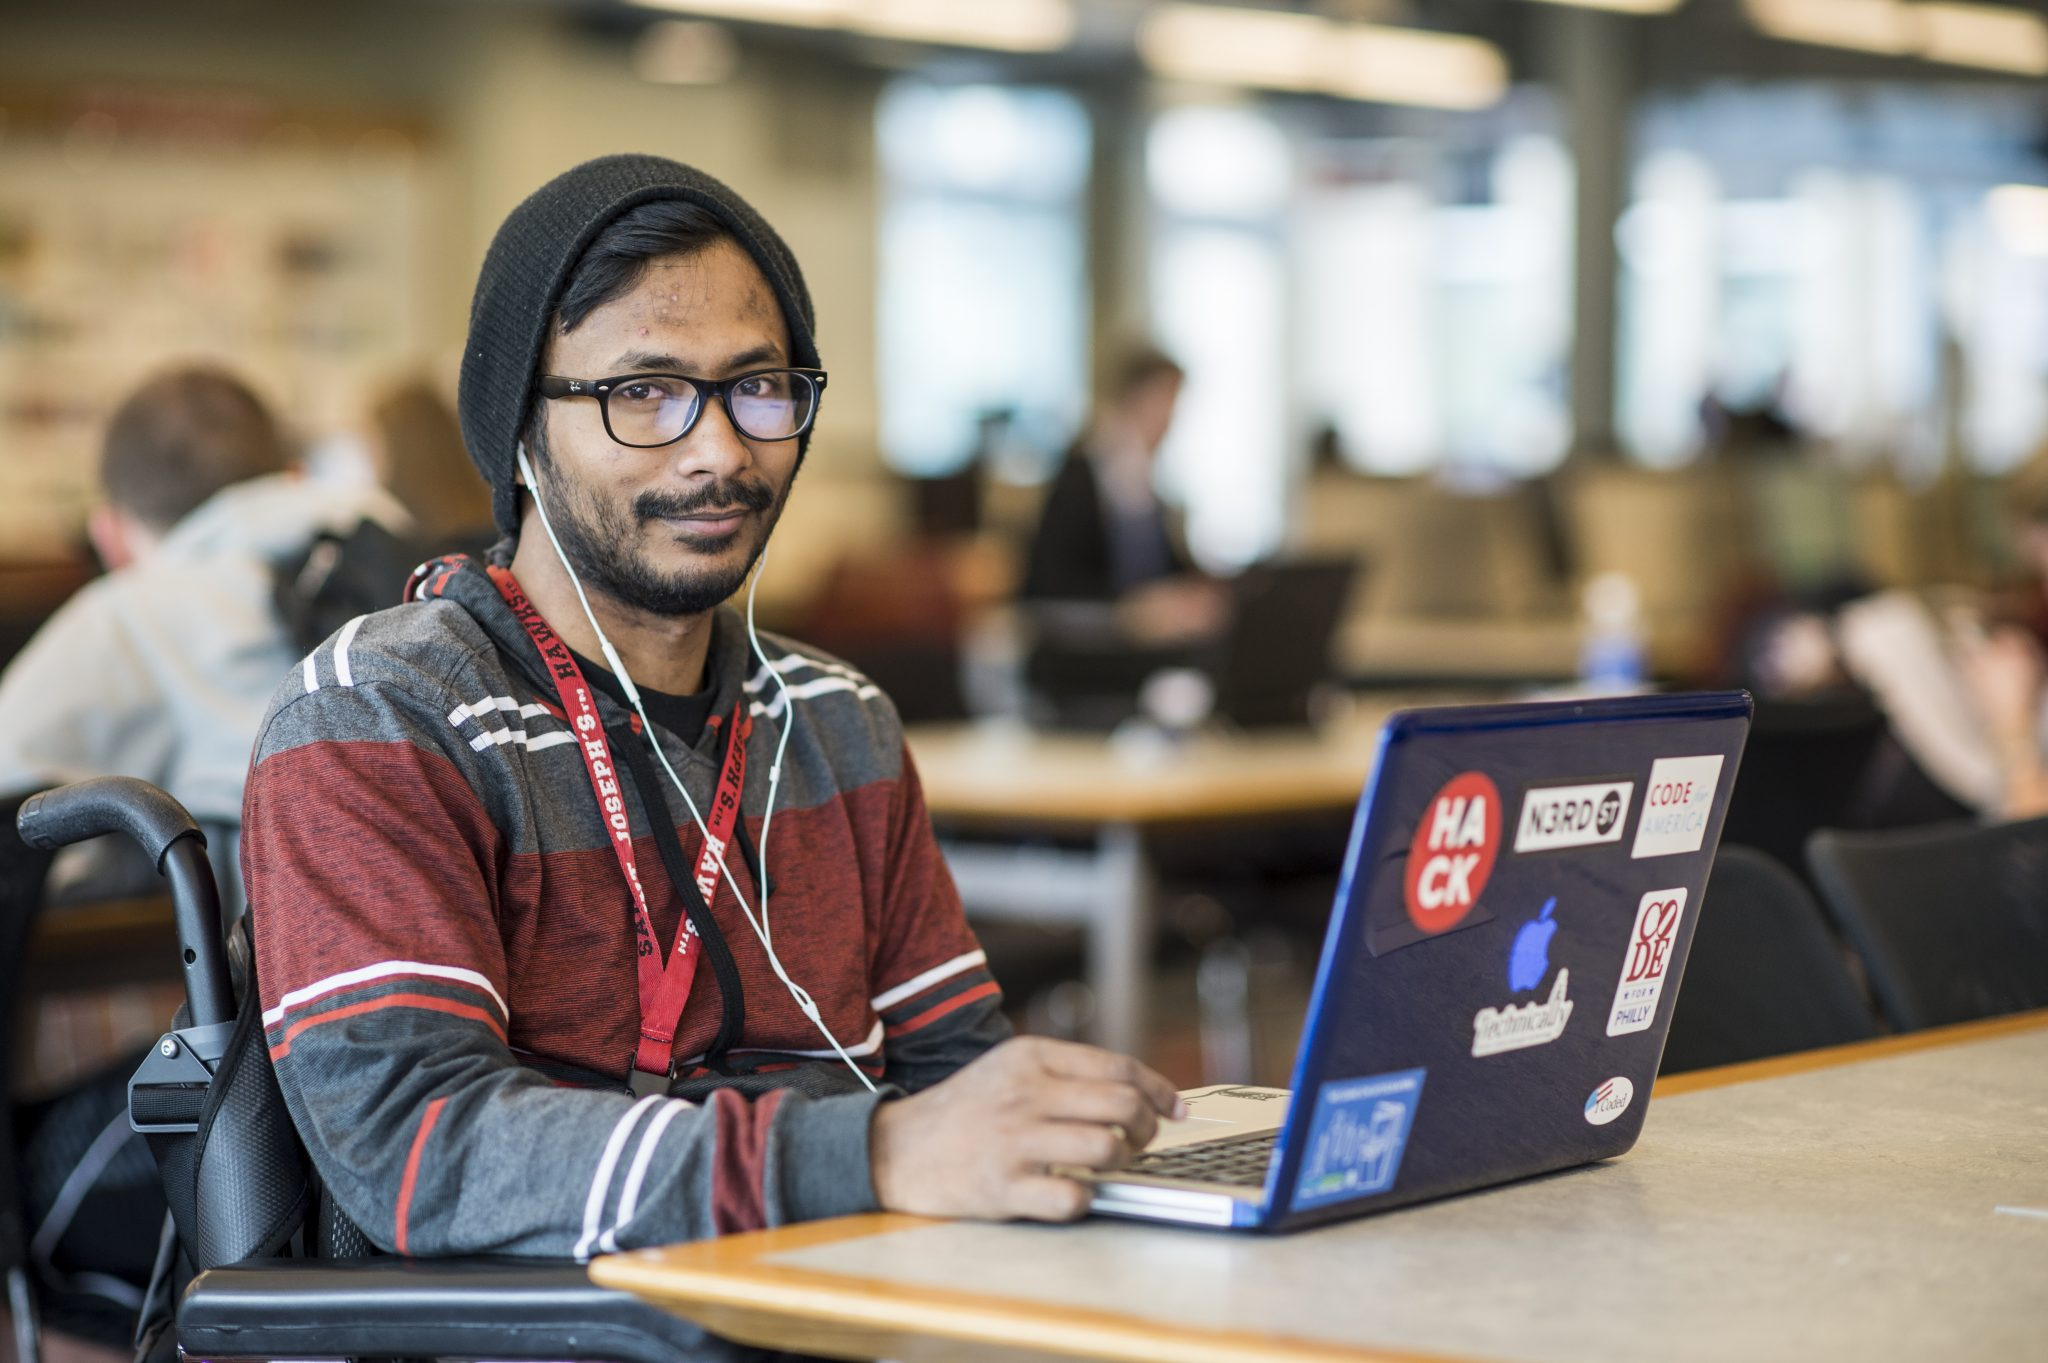 Ather Sharif is sitting in the library in front of his blue laptop covered in stickers. He is wearing a black beanie, striped hoodie, a lanyard, and has white earphones in his ears.